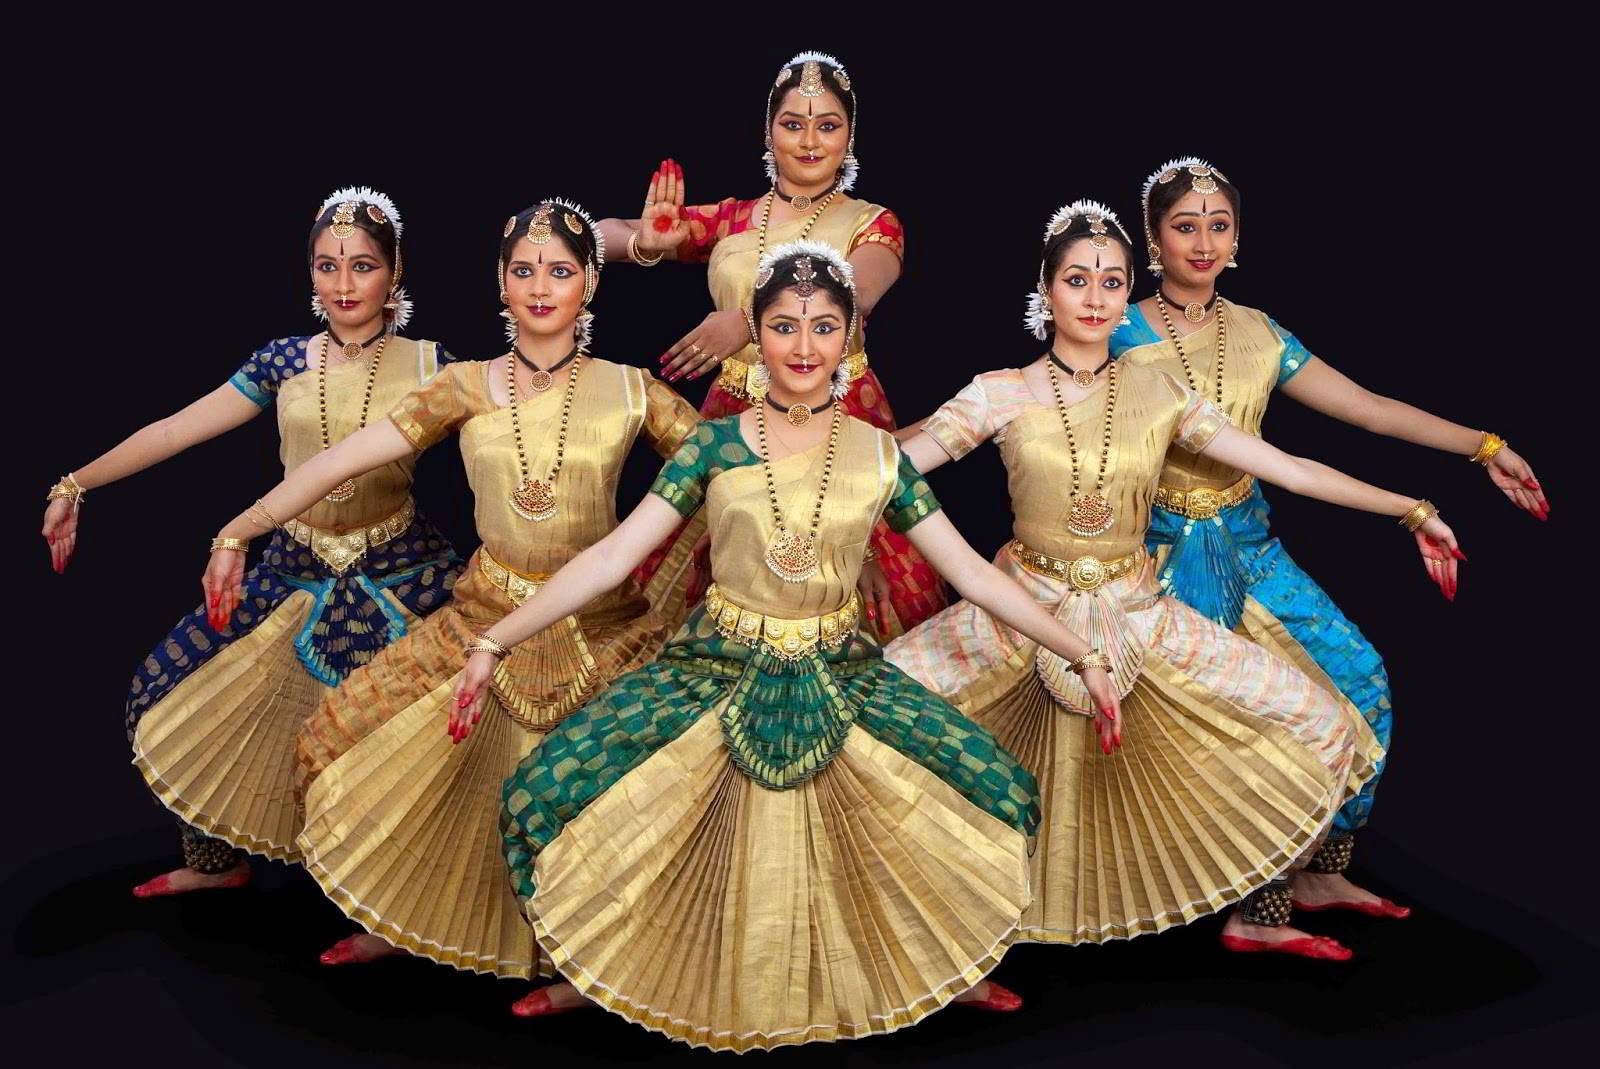 भारतीय नृत्य कला (Indian Classical Dance Forms), सामान्य ज्ञान, General Knowledge in Hindi Medium, GK notes for competitive exam Free Study Material PDF Download.